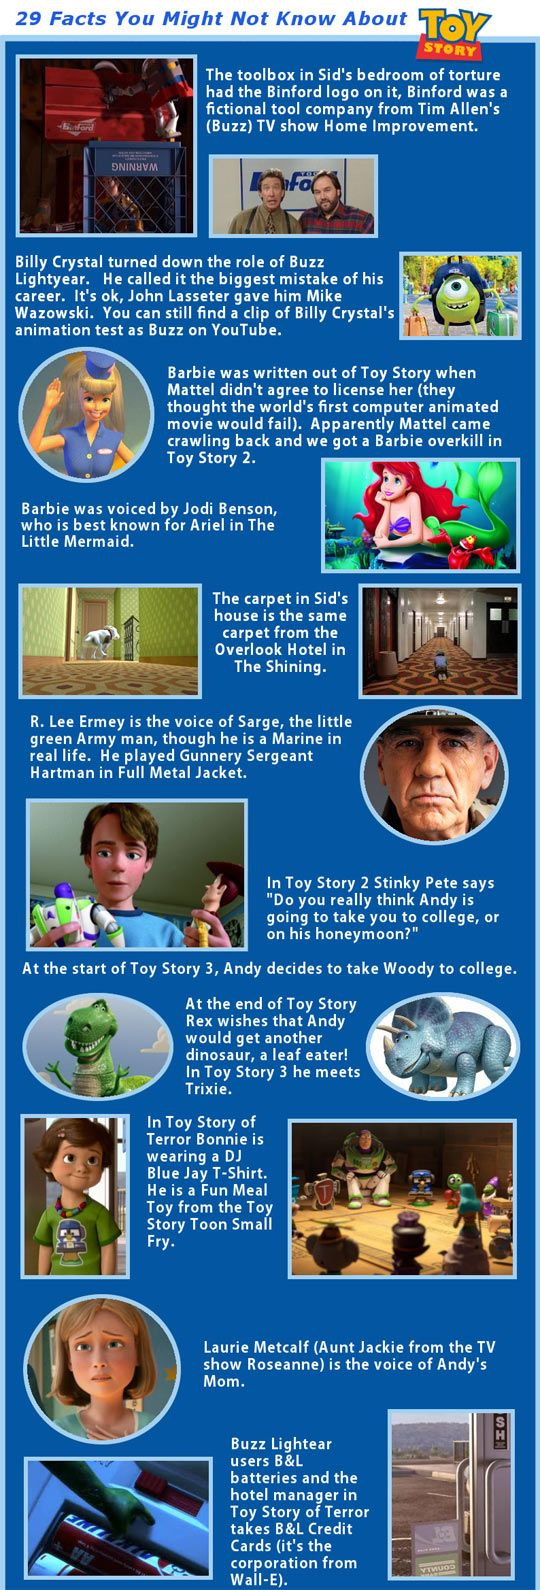 20Facts About Iconic Movies Even True Fans May Not Know